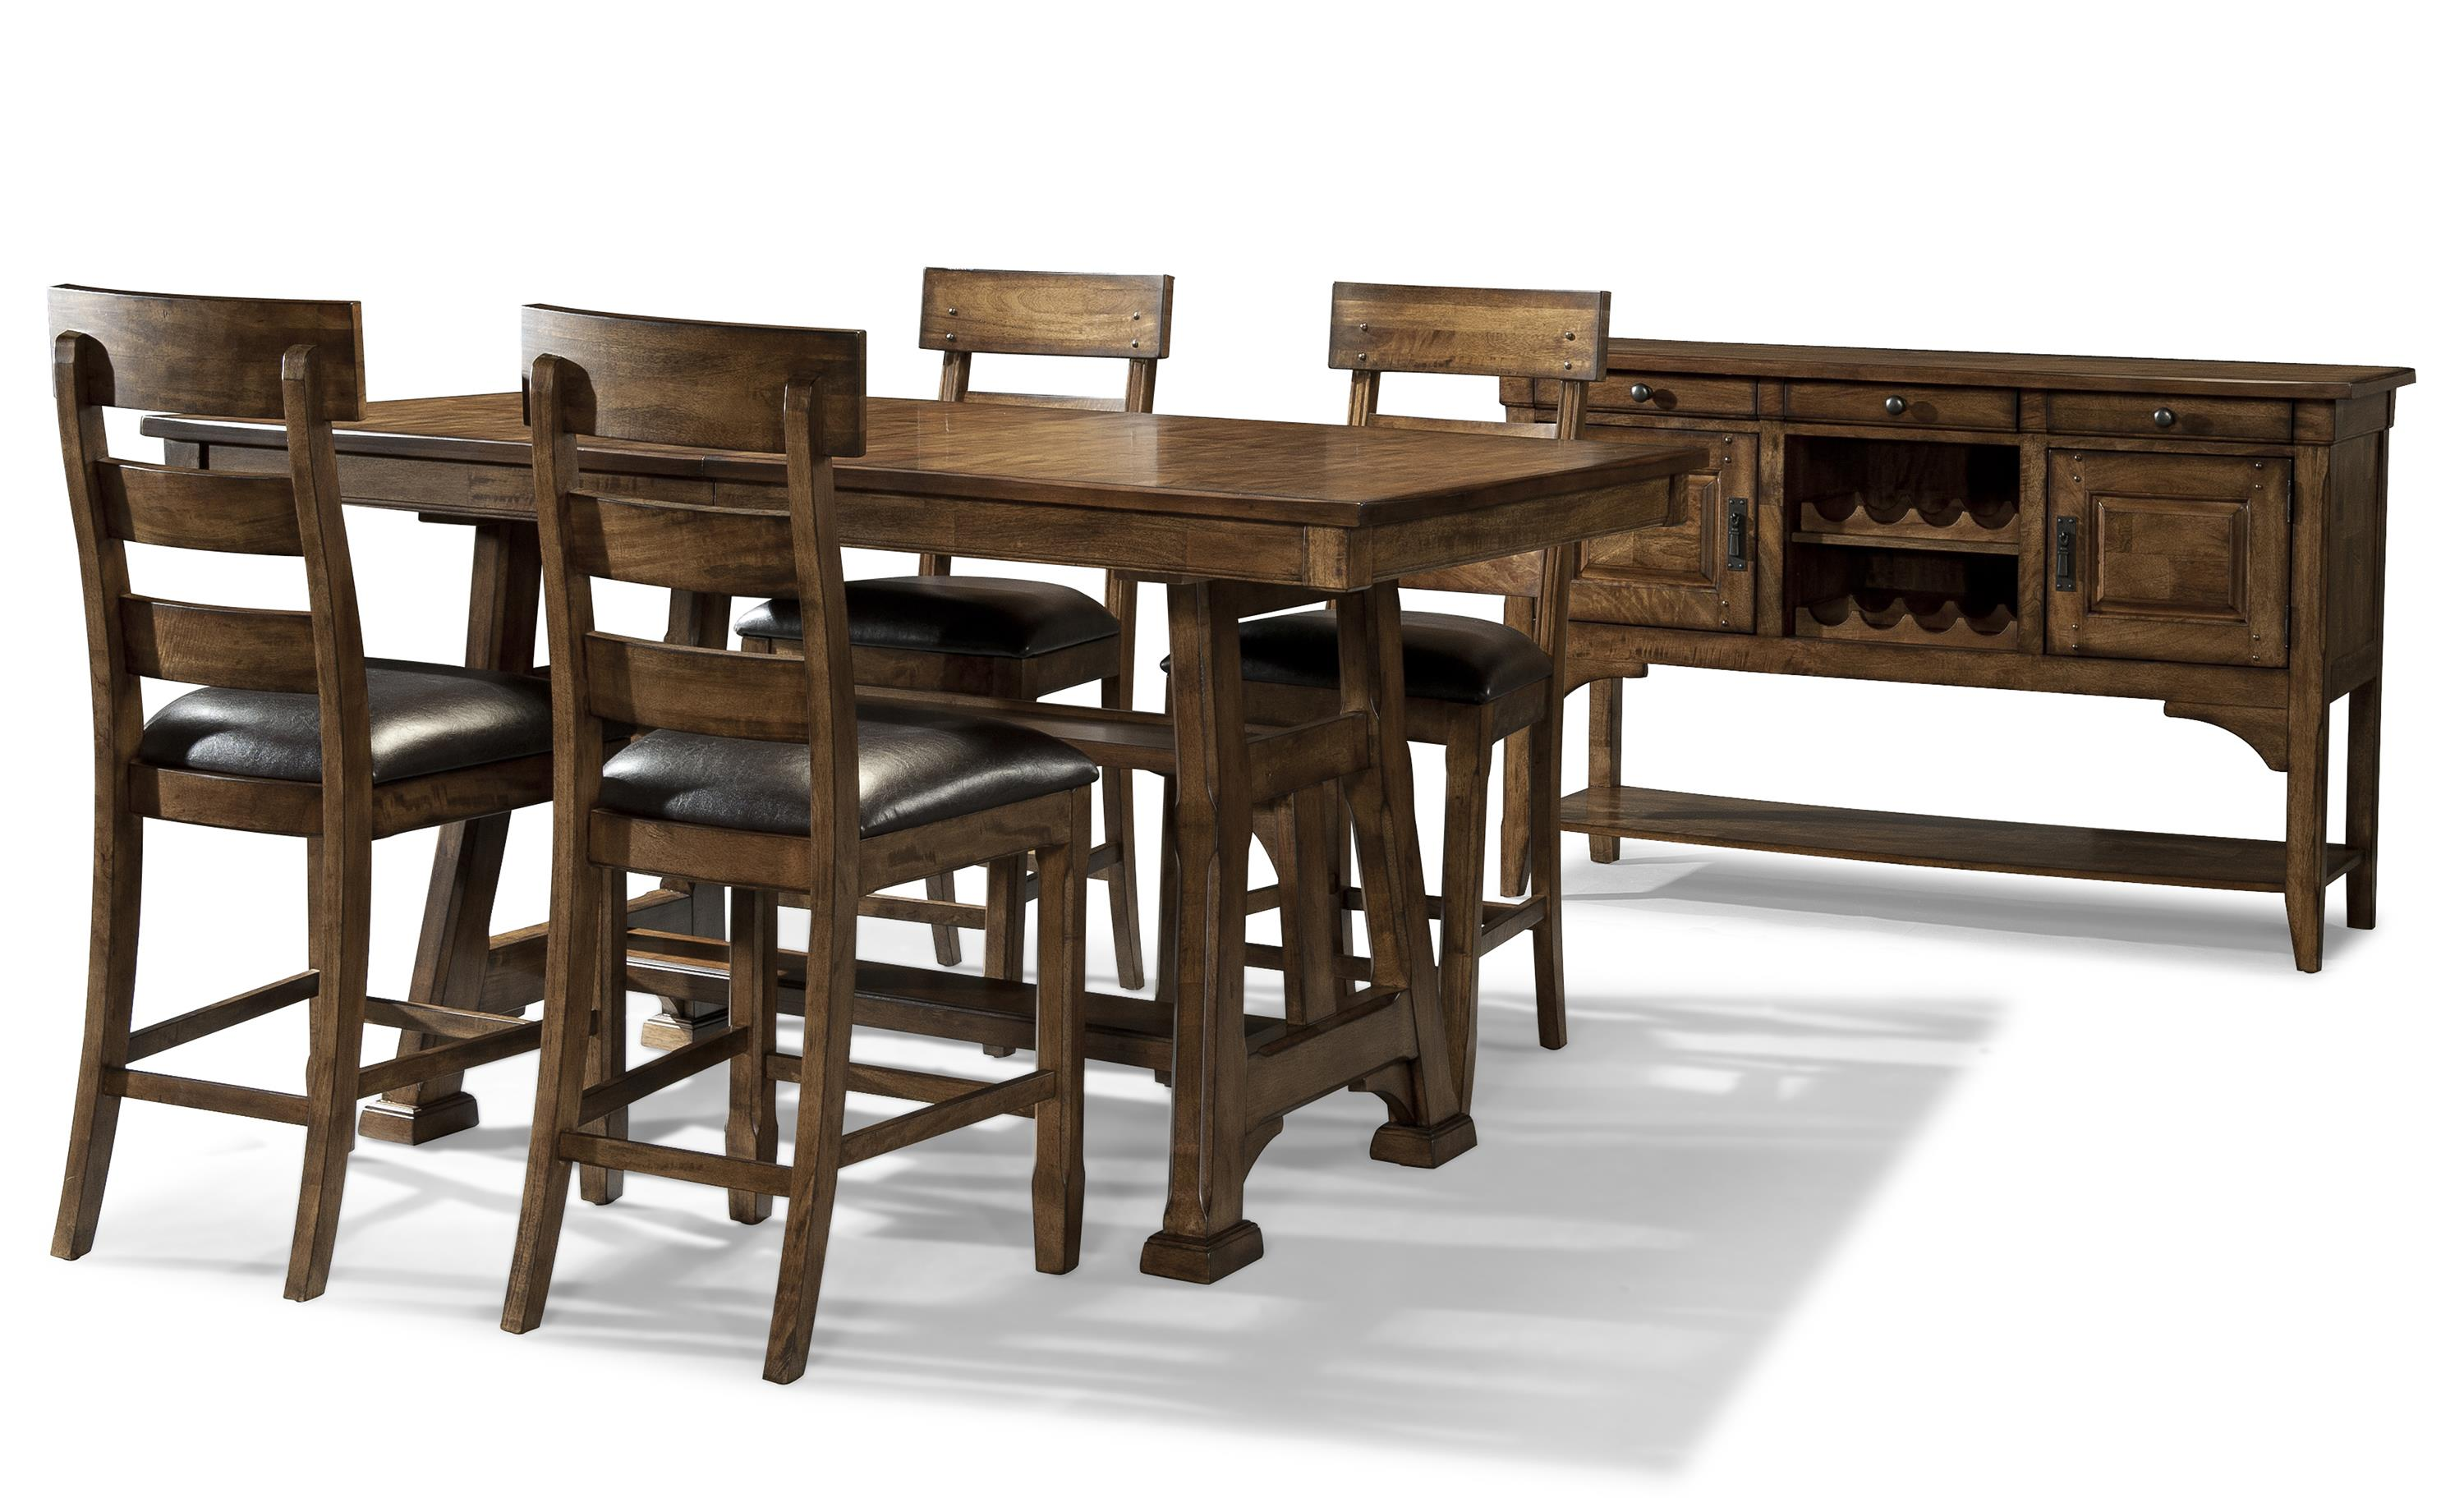 AAmerica Ozark Casual Gathering Height Dining Room Group - Item Number: OZA-MA Pub Dining Room Group 1